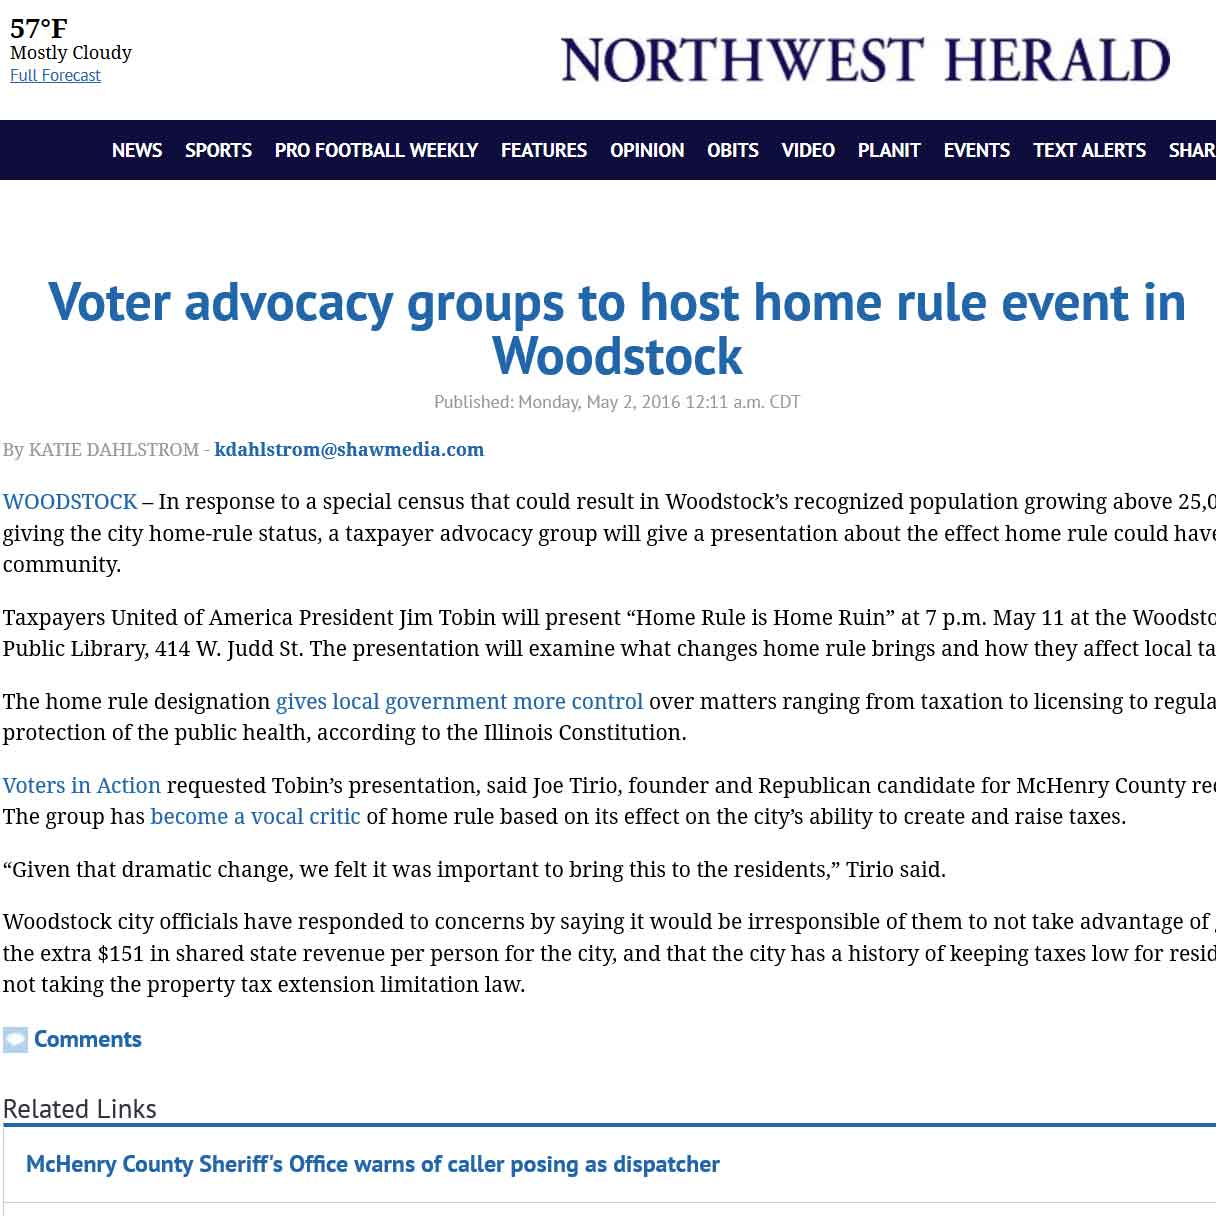 Northwest Herald|Voter advocacy groups to host home rule event in Woodstock